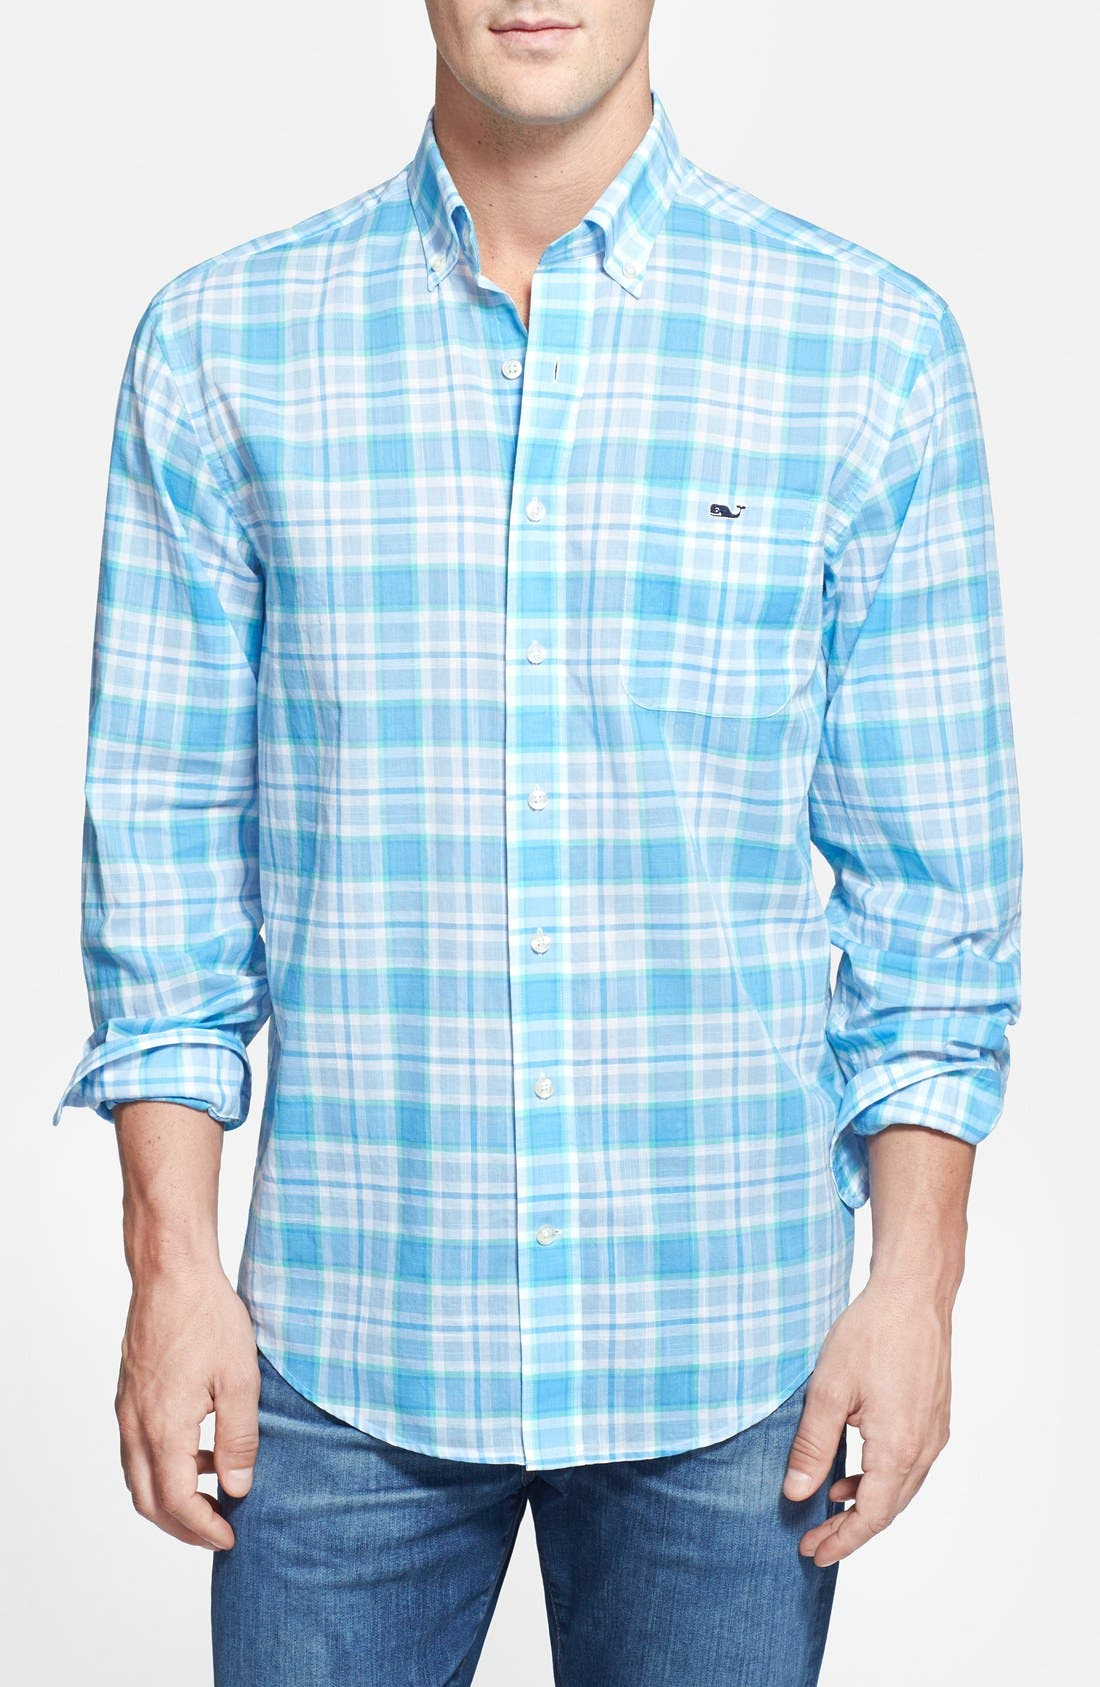 Alternate Image 1 Selected - Vineyard Vines 'Tucker' Classic Fit Plaid Sport Shirt